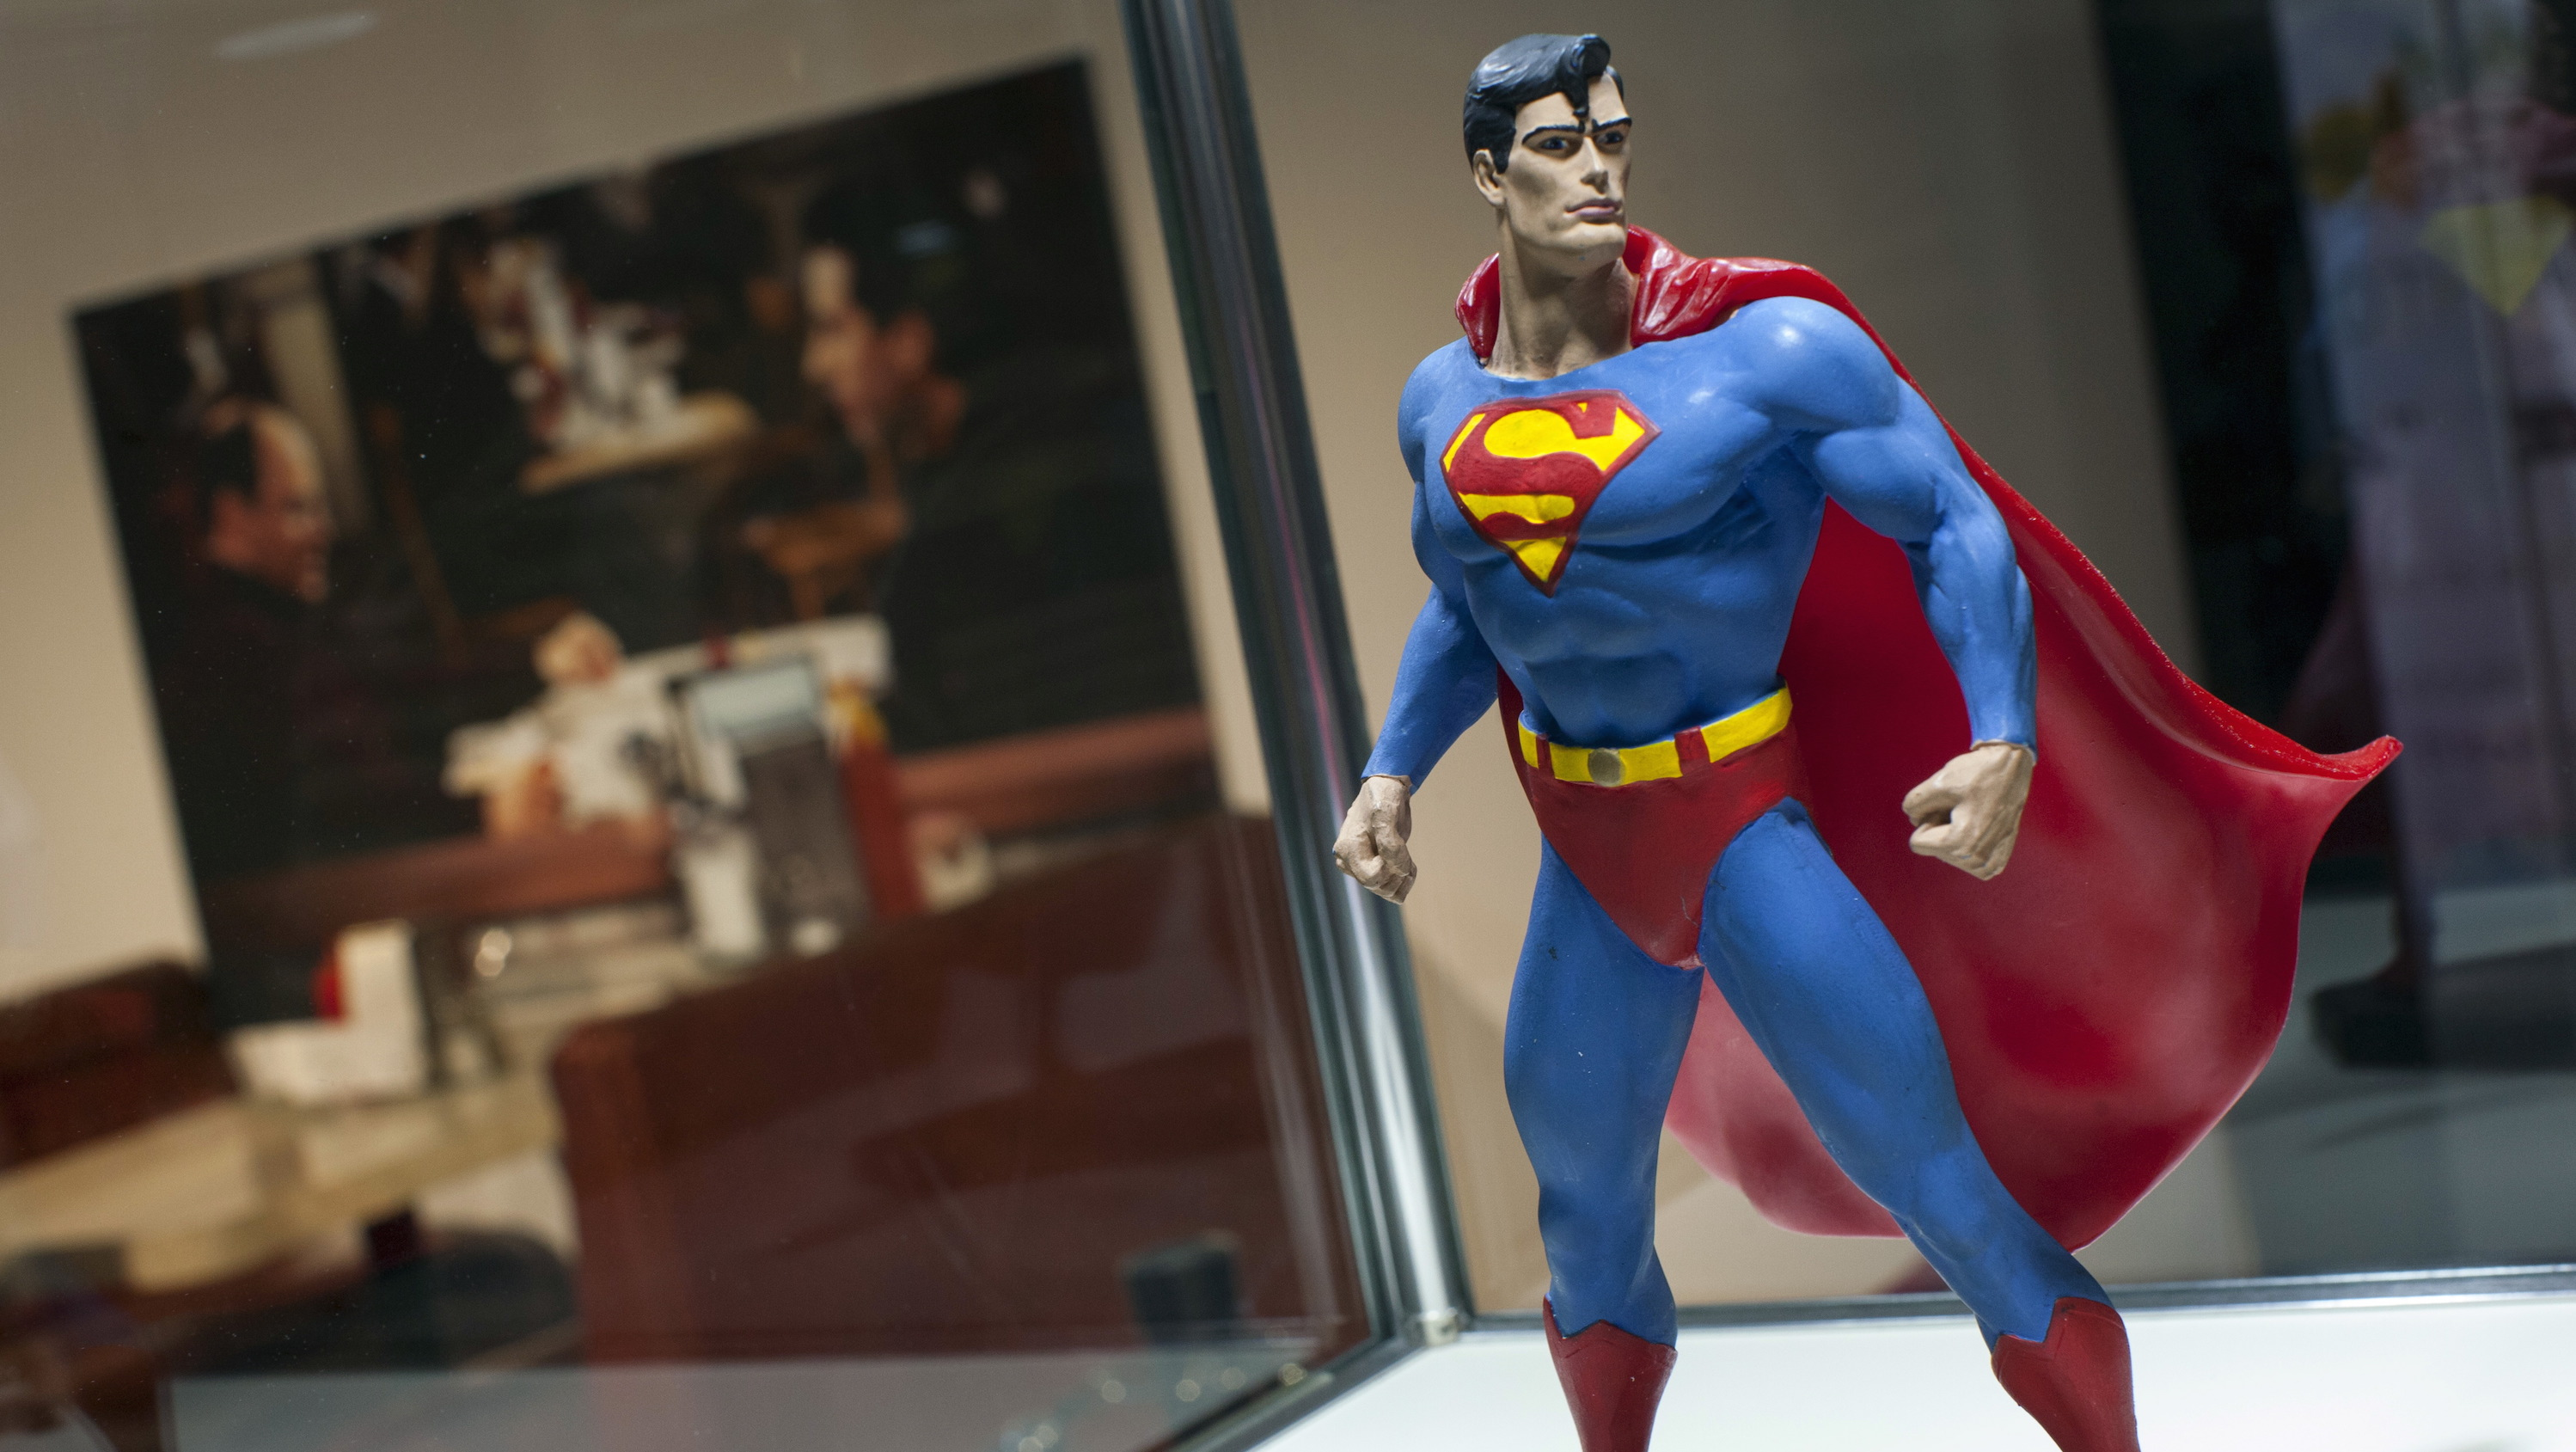 """A Superman figure from the original set of the """"Seinfeld"""" television comedy series is seen on display at Hulu's """"Seinfeld: The Apartment"""", a temporary exhibit on West 14th street in the Manhattan borough of New York City"""